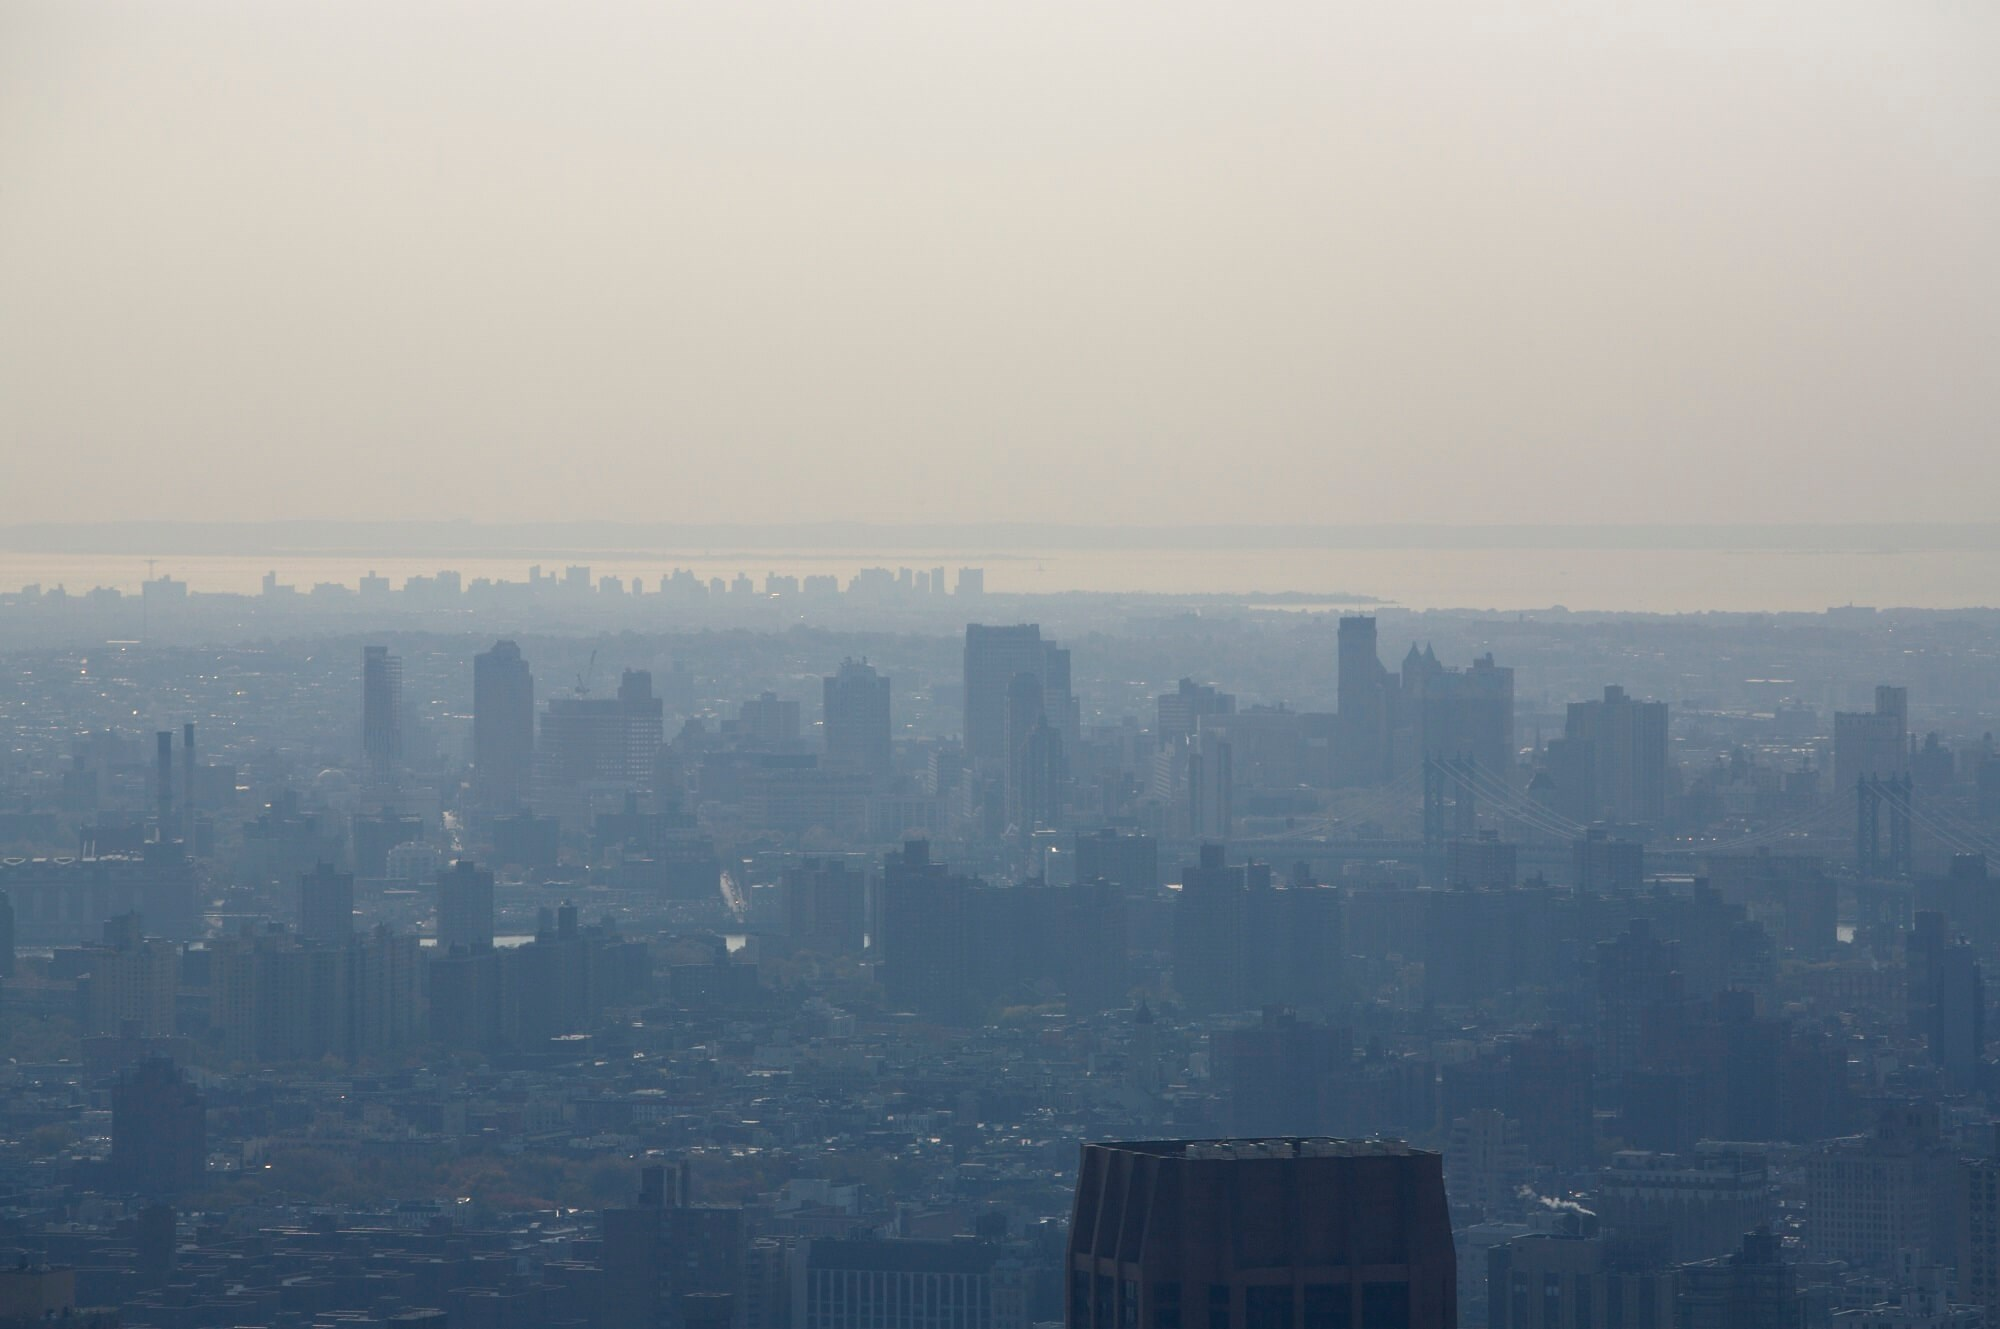 Records of respiratory infection hospital admissions and ED visits were obtained for adult New York State residents who lived within 15 miles of 6 urban air-monitoring stations.